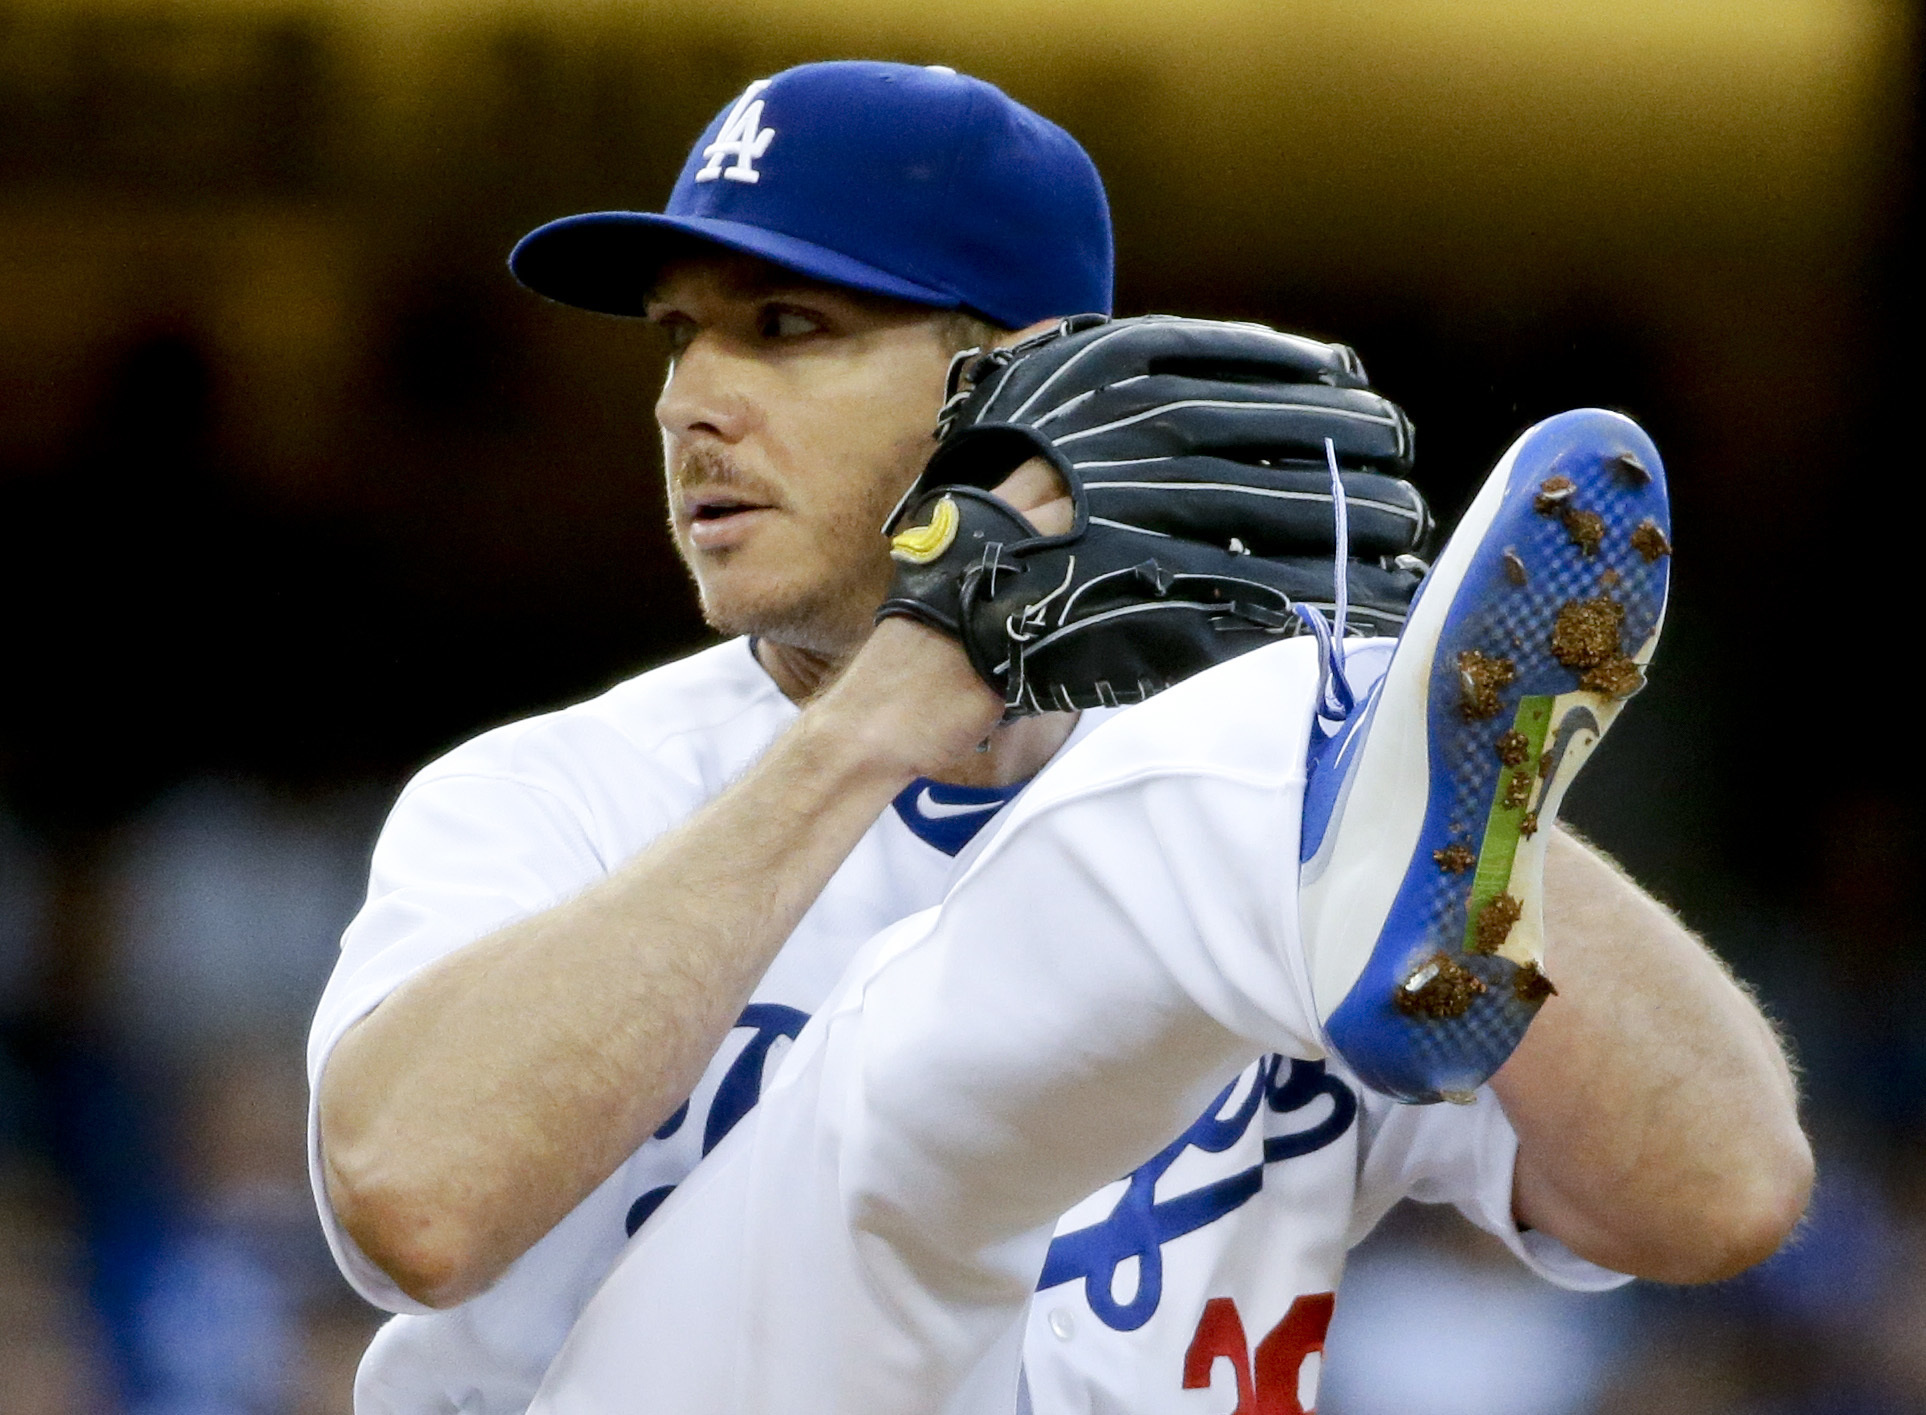 Los Angeles Dodgers starting pitcher Scott Kazmir winds up during the first inning of a baseball game against the Cincinnati Reds in Los Angeles, Wednesday, May 25, 2016. (AP Photo/Chris Carlson)